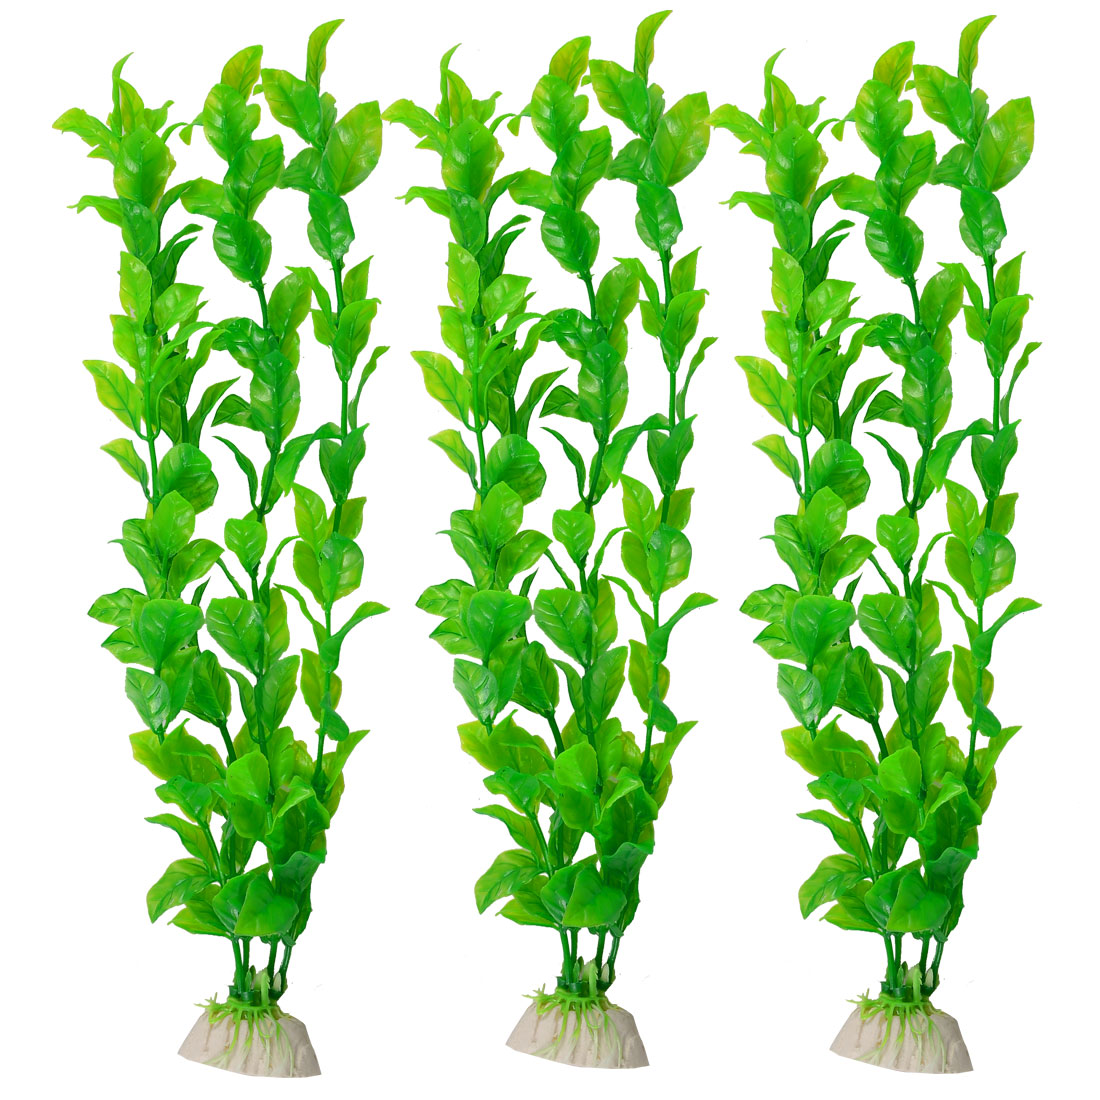 3 Pcs Green Plastic Plant Aquascaping 32cm High for Aquarium Tank